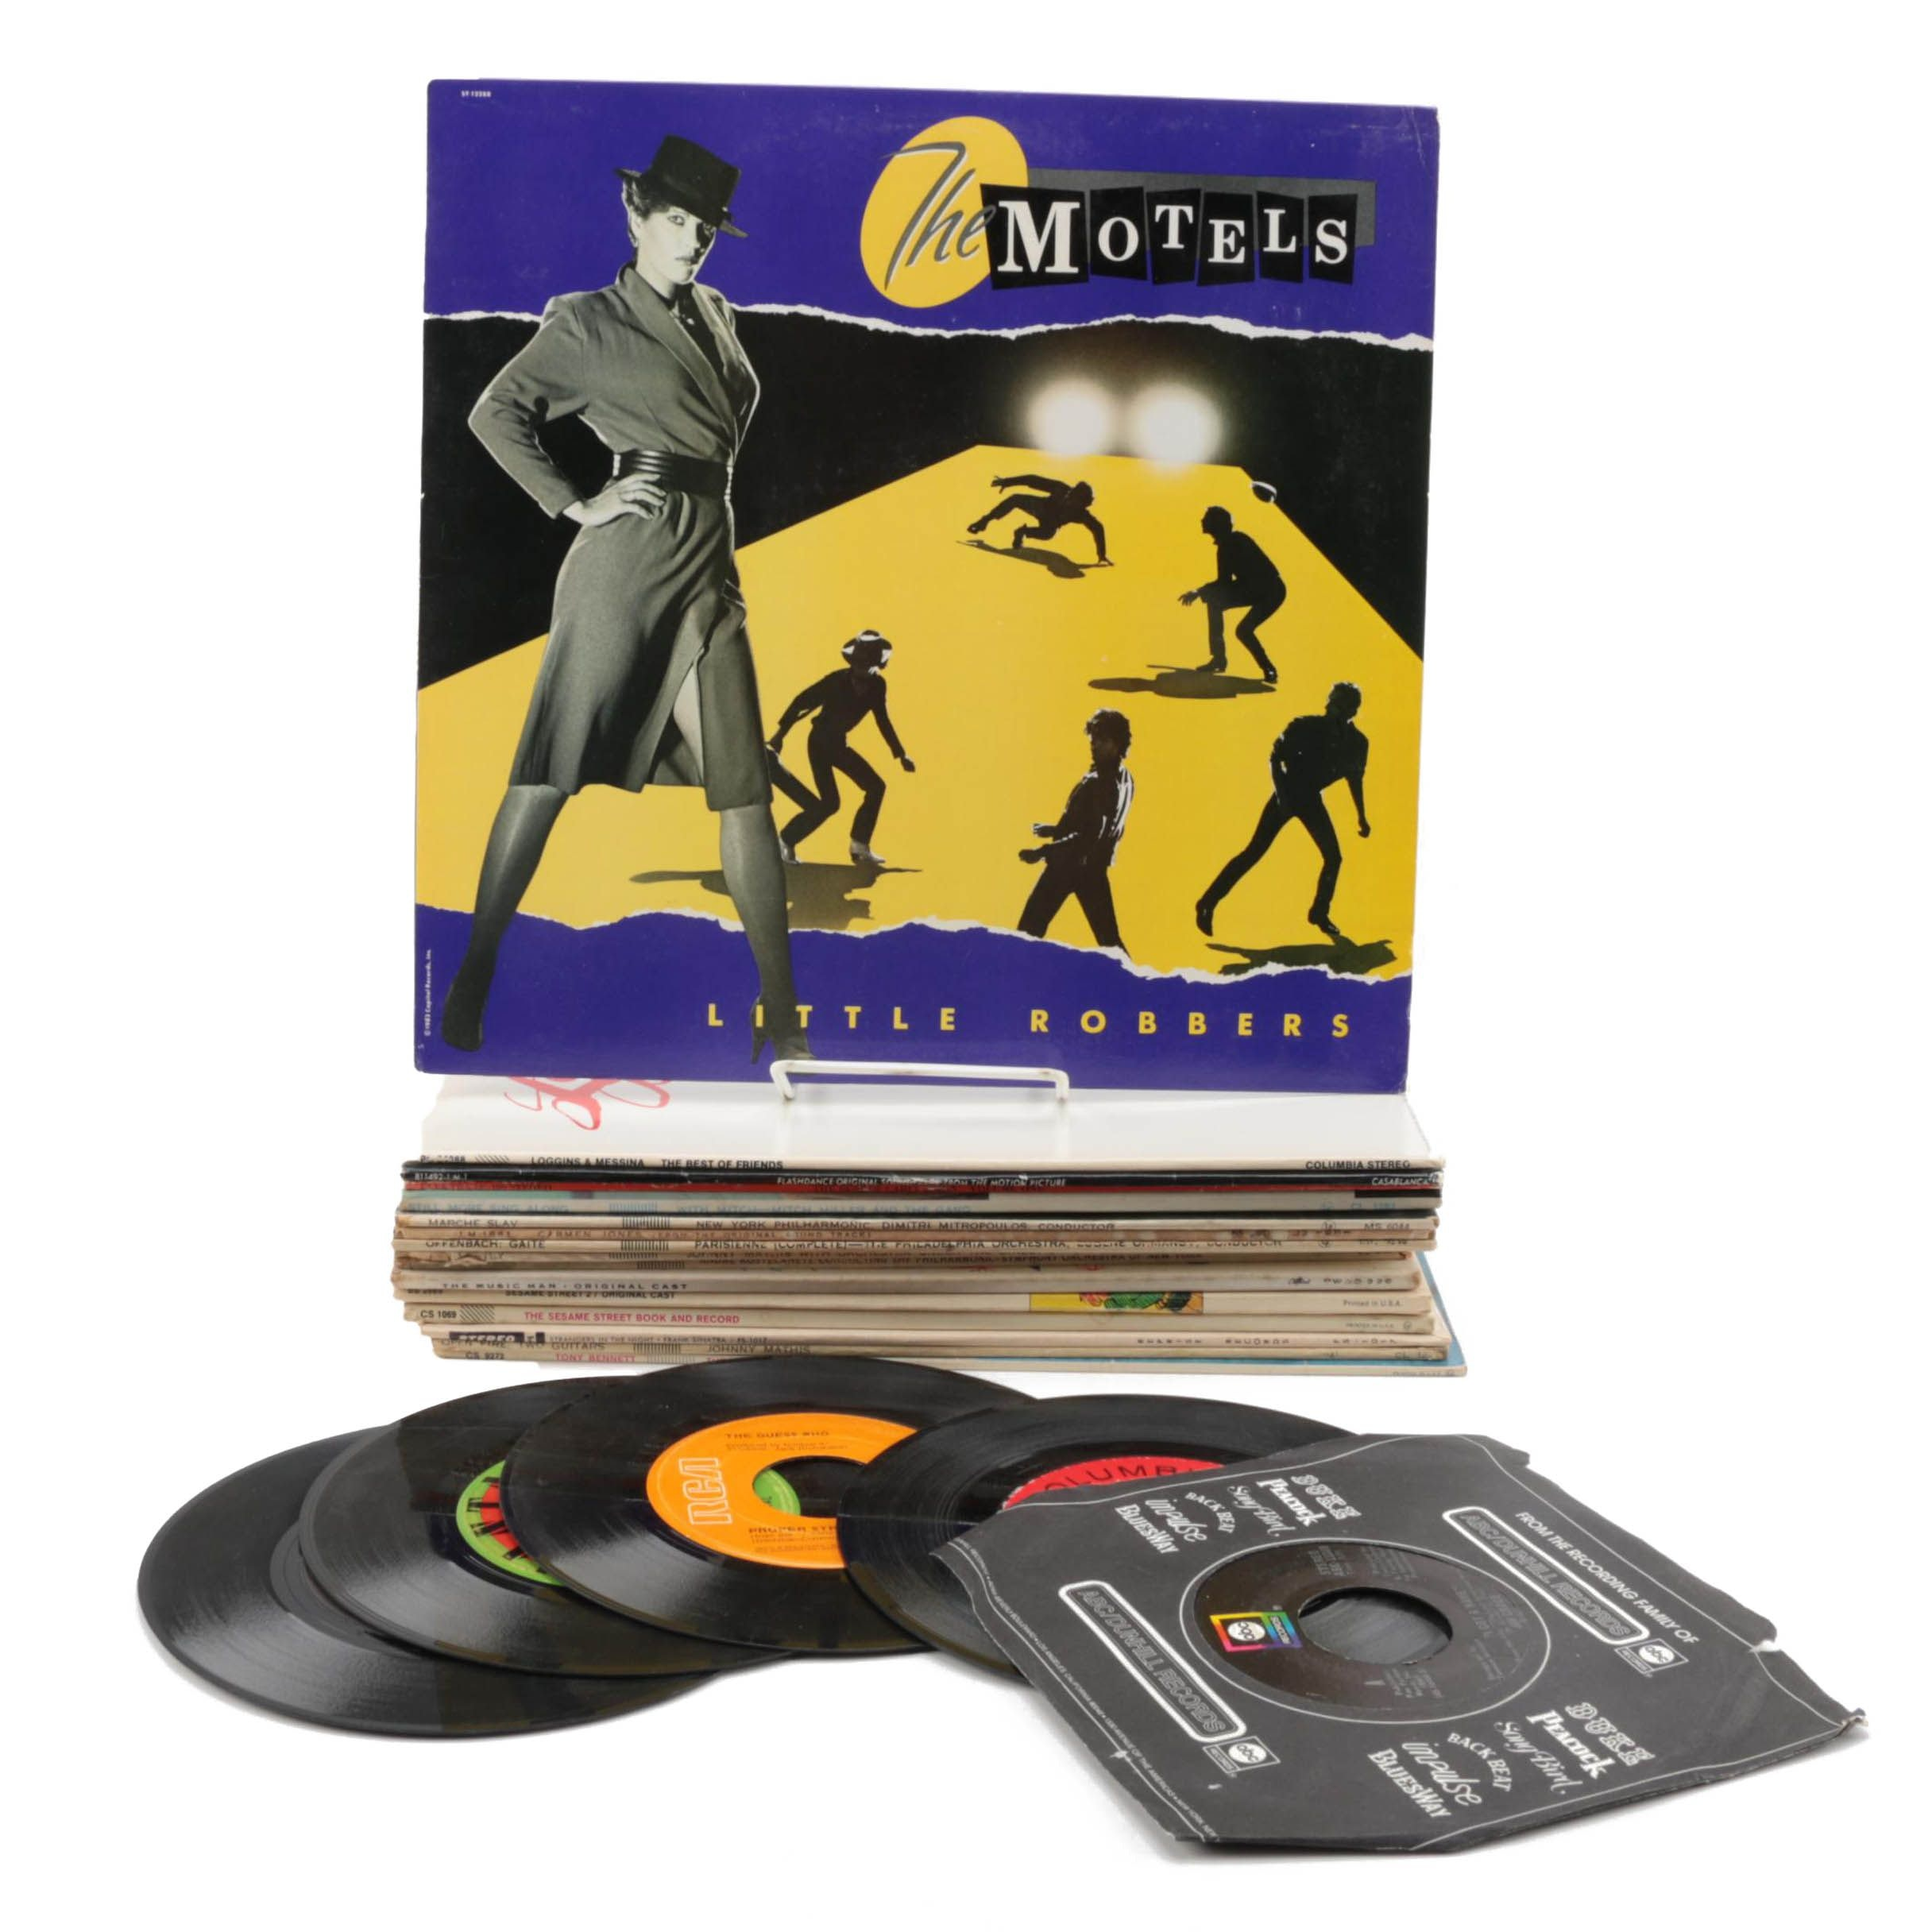 Sinatra, Tony Bennett, The Motels, Sesame Street and Other Vintage Records